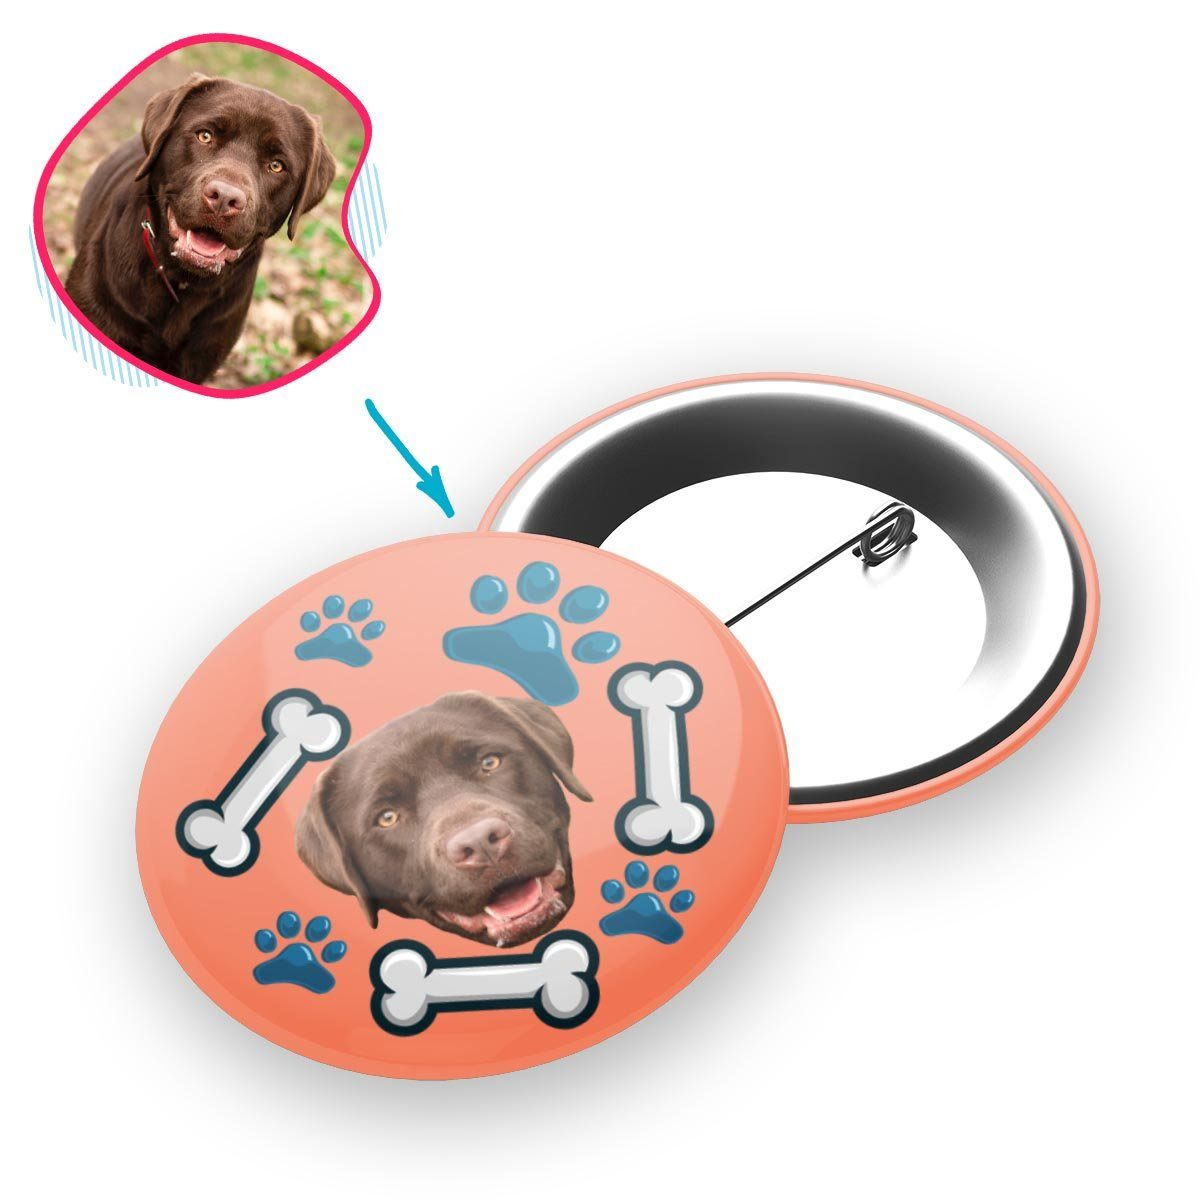 salmon Dog pin personalized with photo of face printed on it